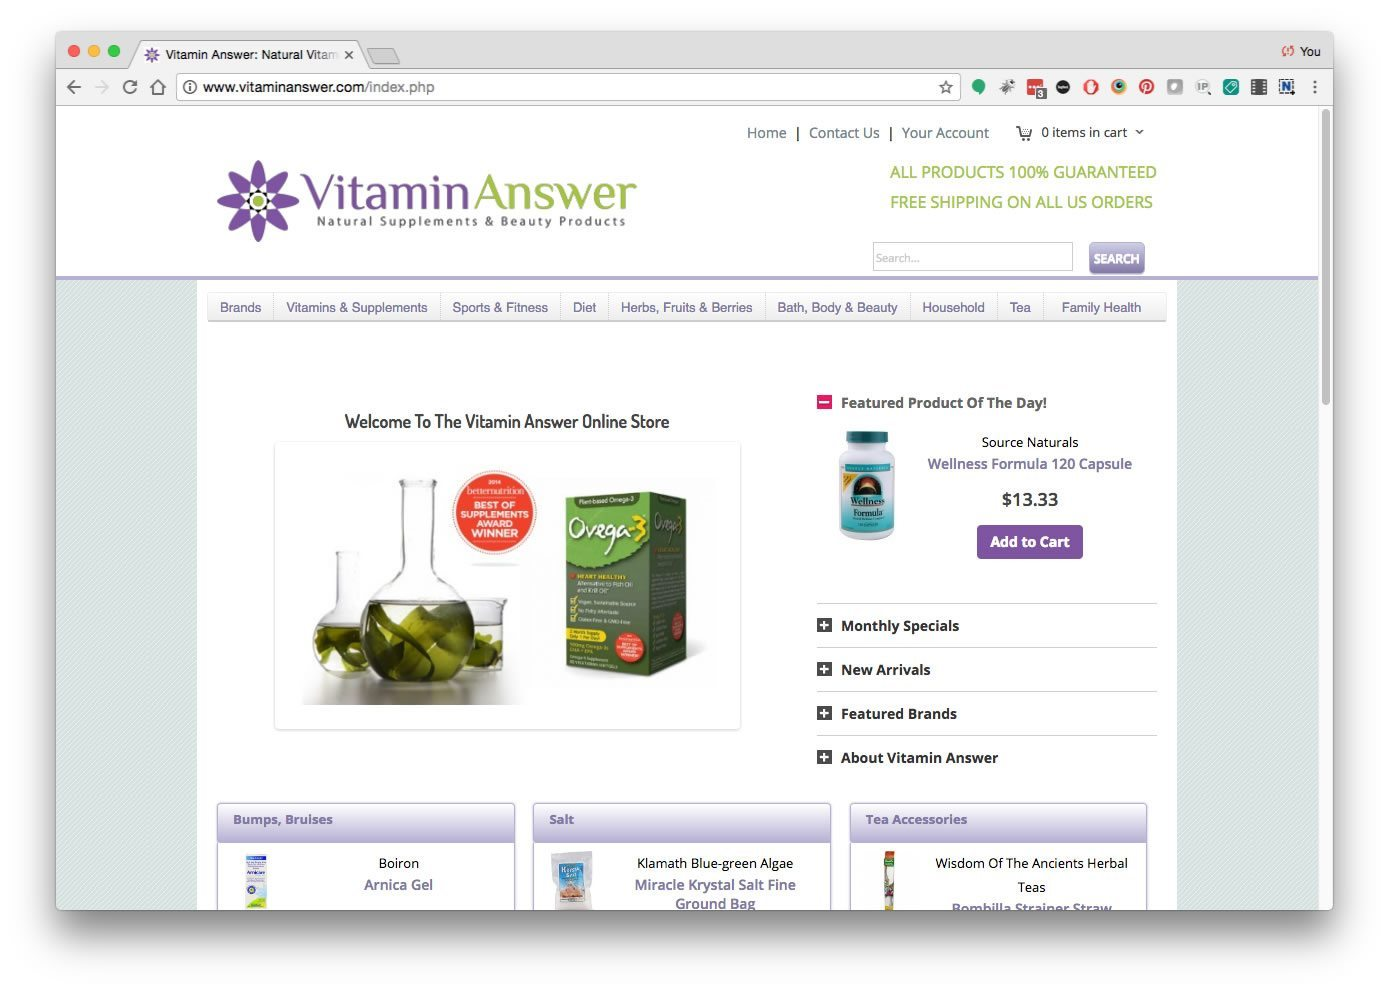 Vitamin Answer